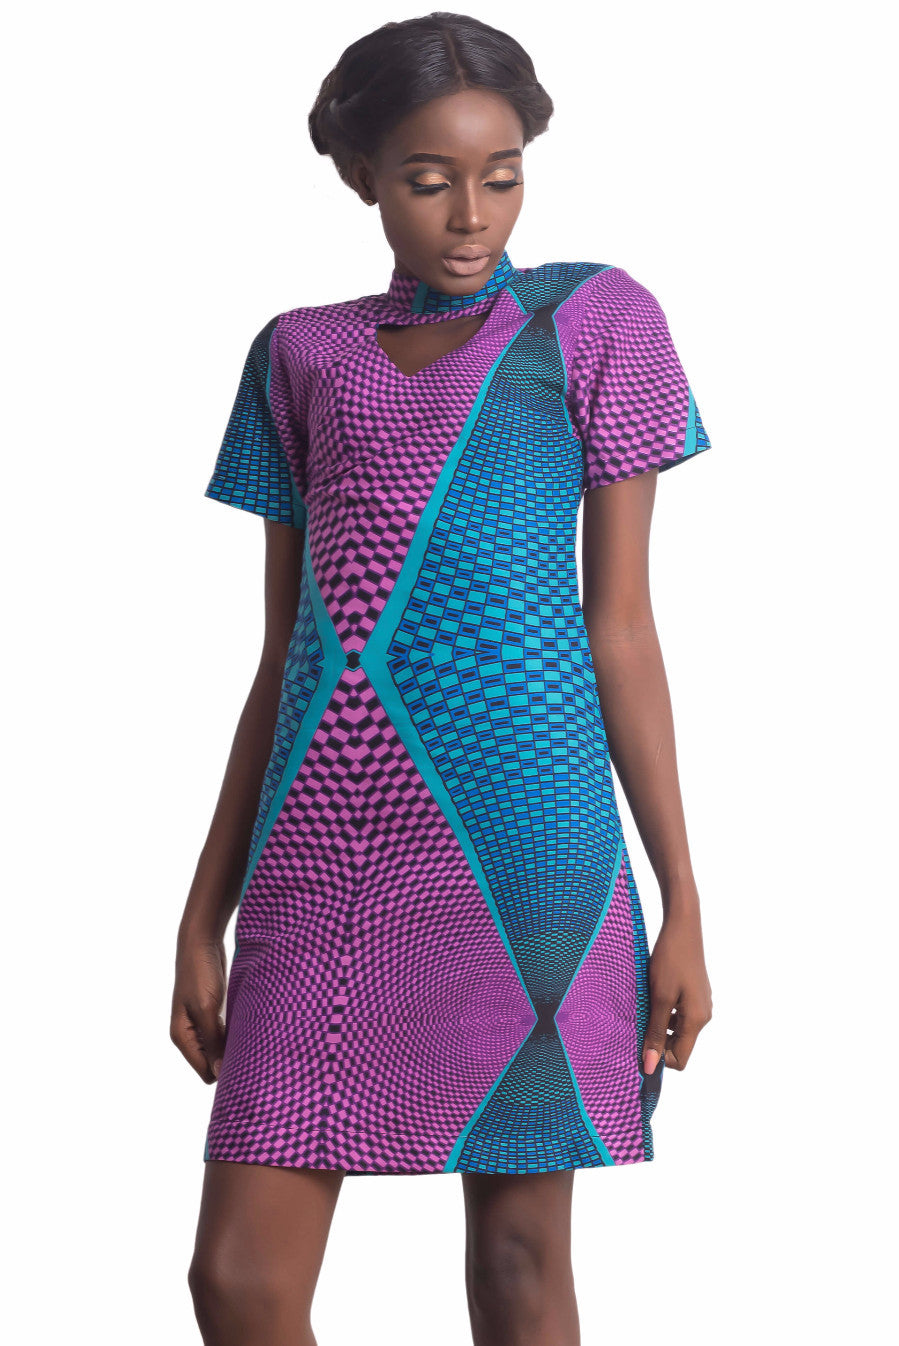 Women wearing Ankarage Ankara African Print Adaure Purple Blue Choker A Line Shift Dress